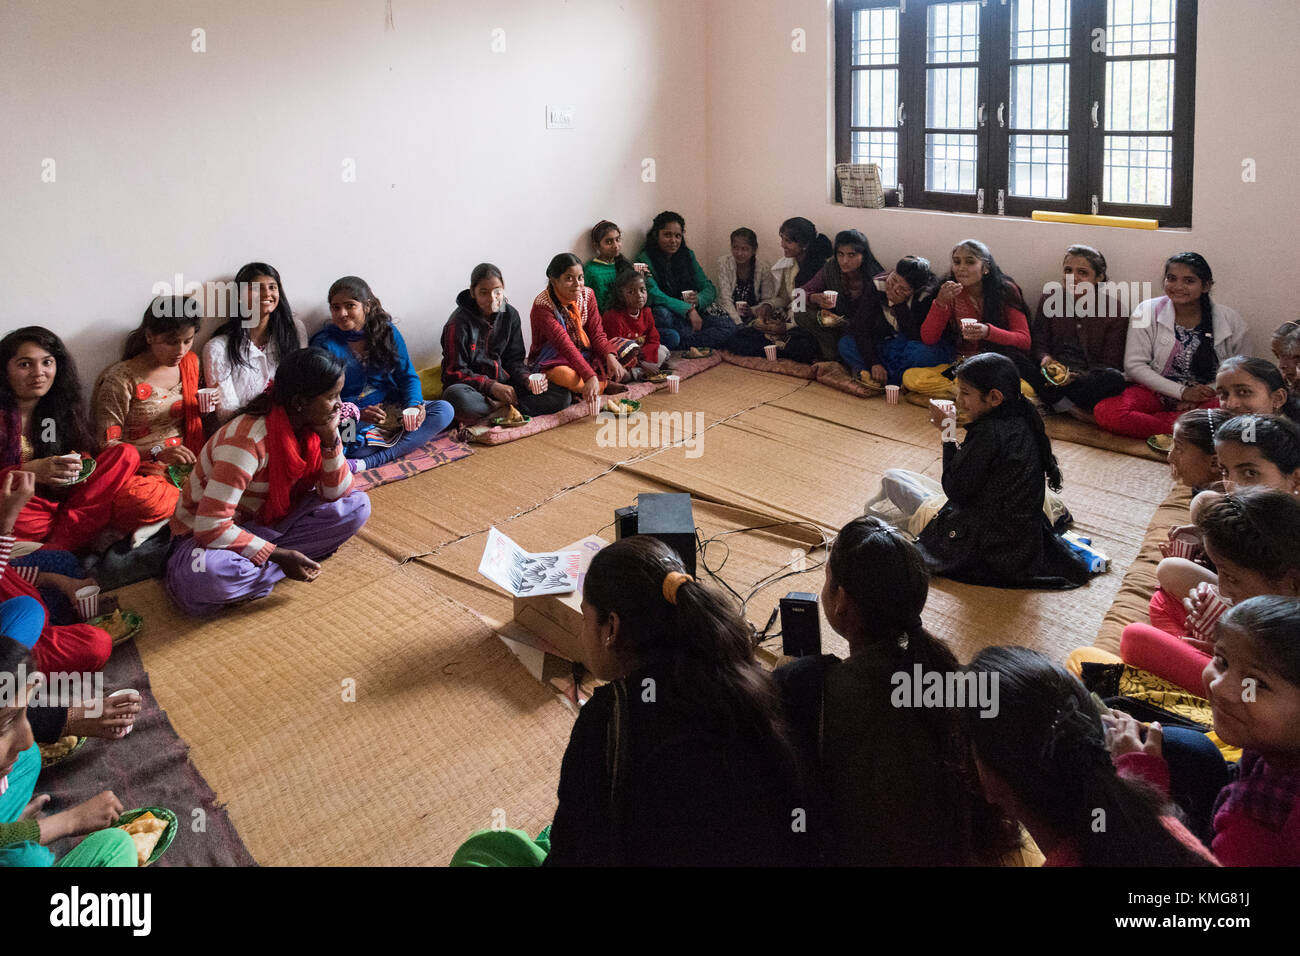 Young school going girls sitting together in a room for a meeting. - Stock Image